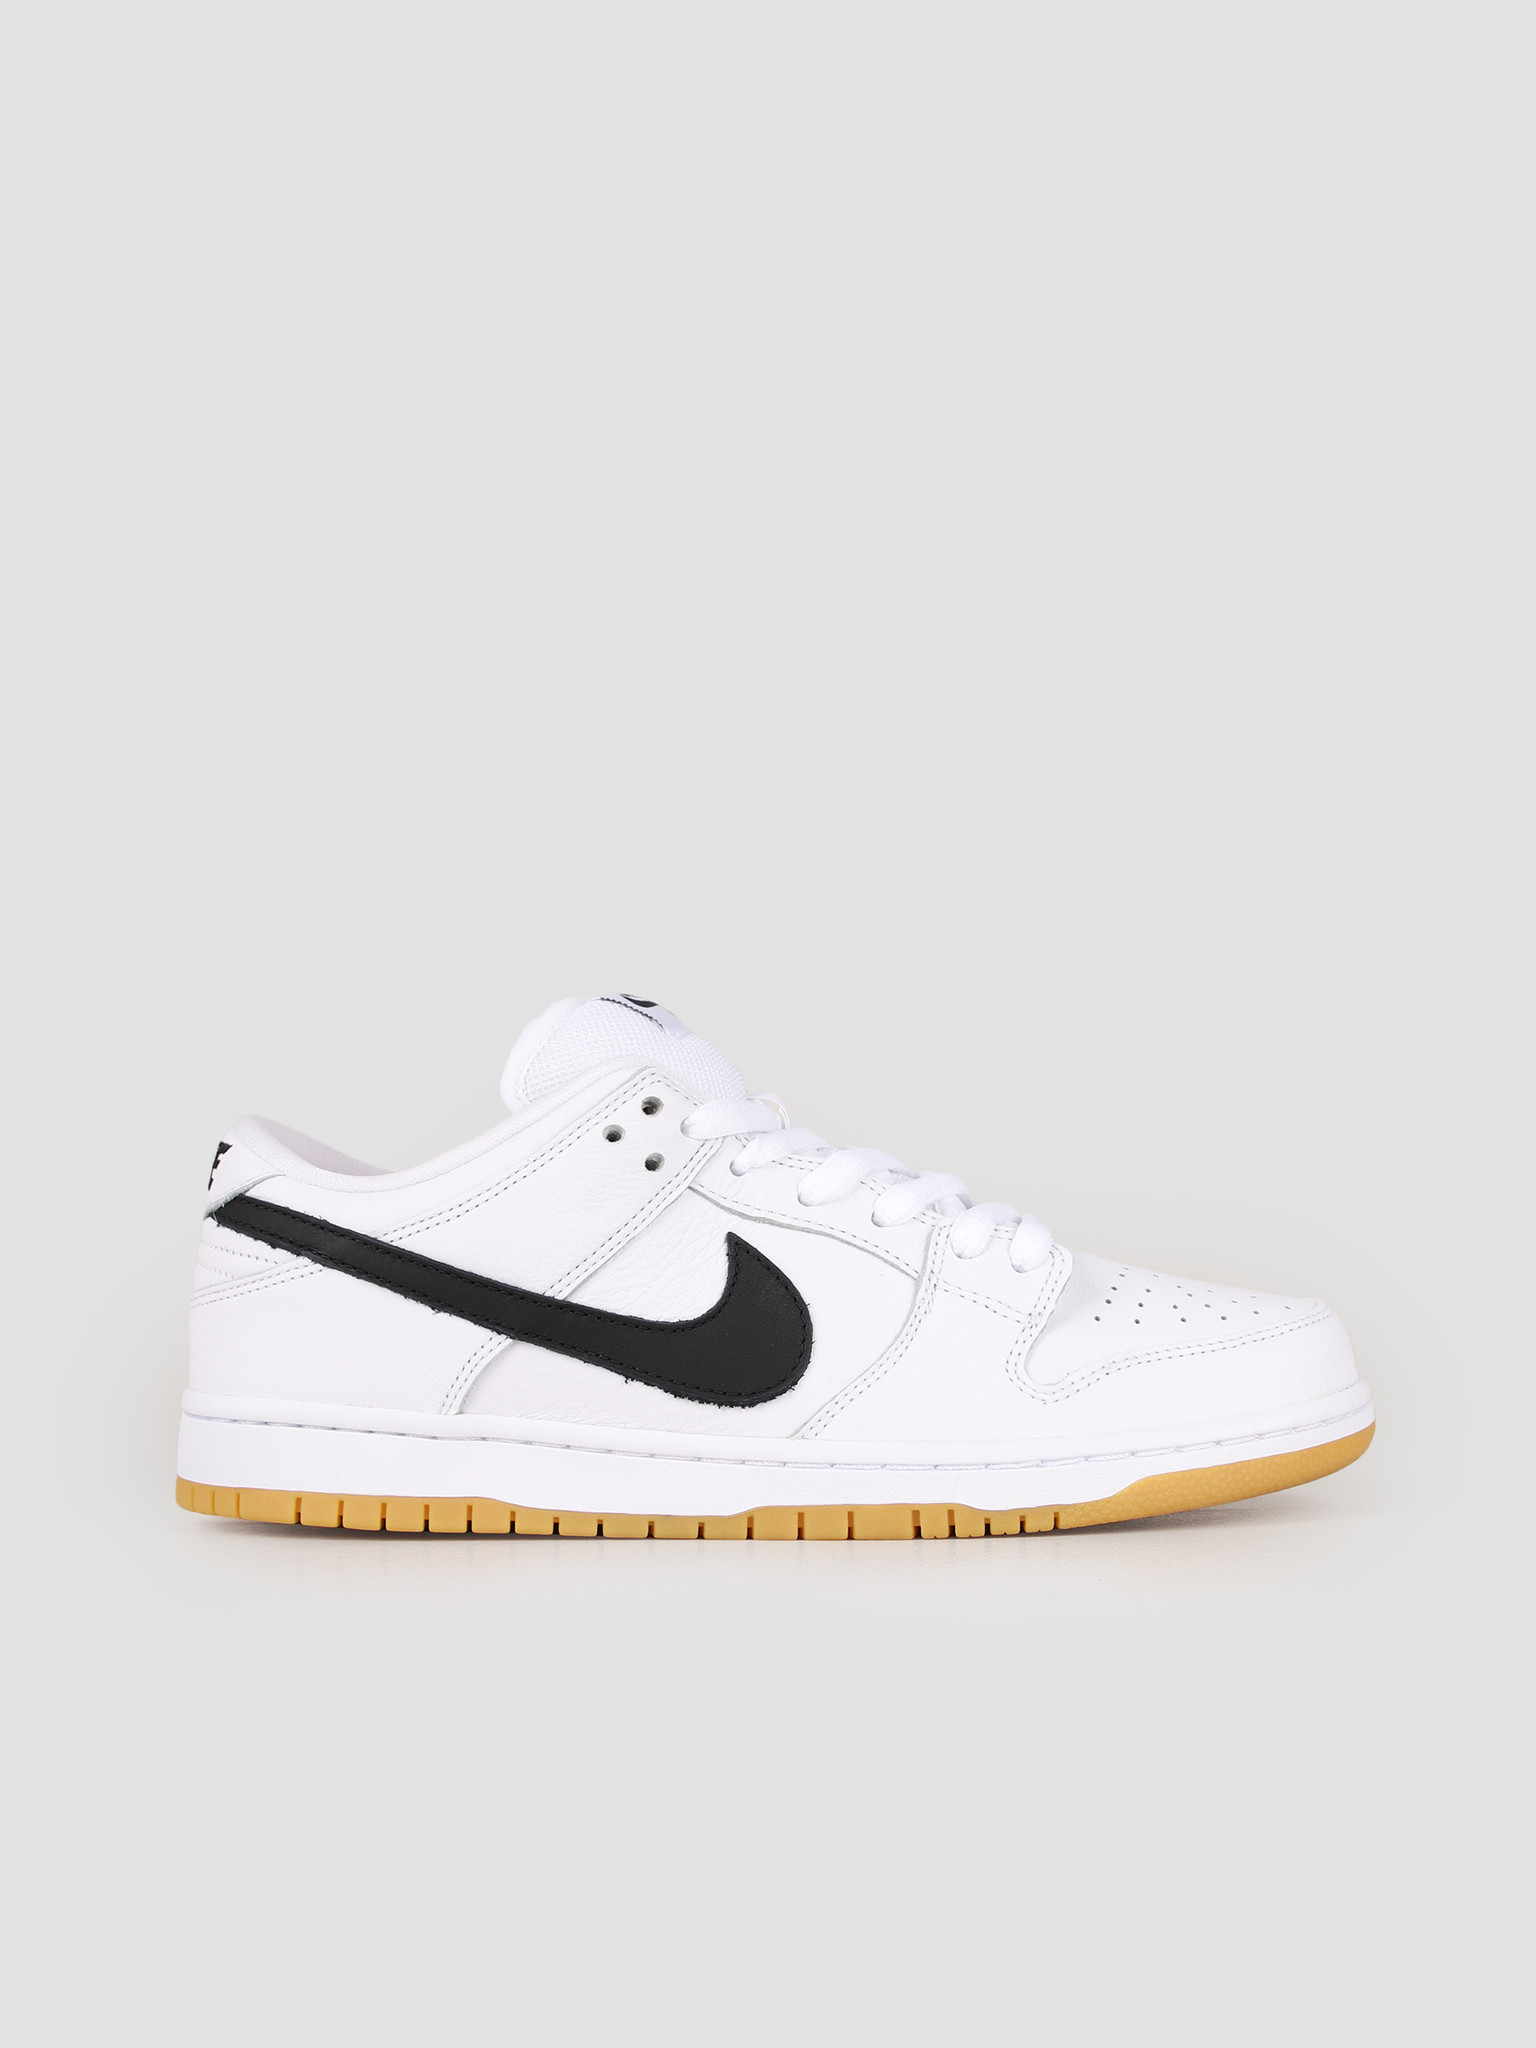 5f8a5eb78df5 Nike Nike SB Dunk Low Pro Iso White Black-White-Gum Light Brown CD2563